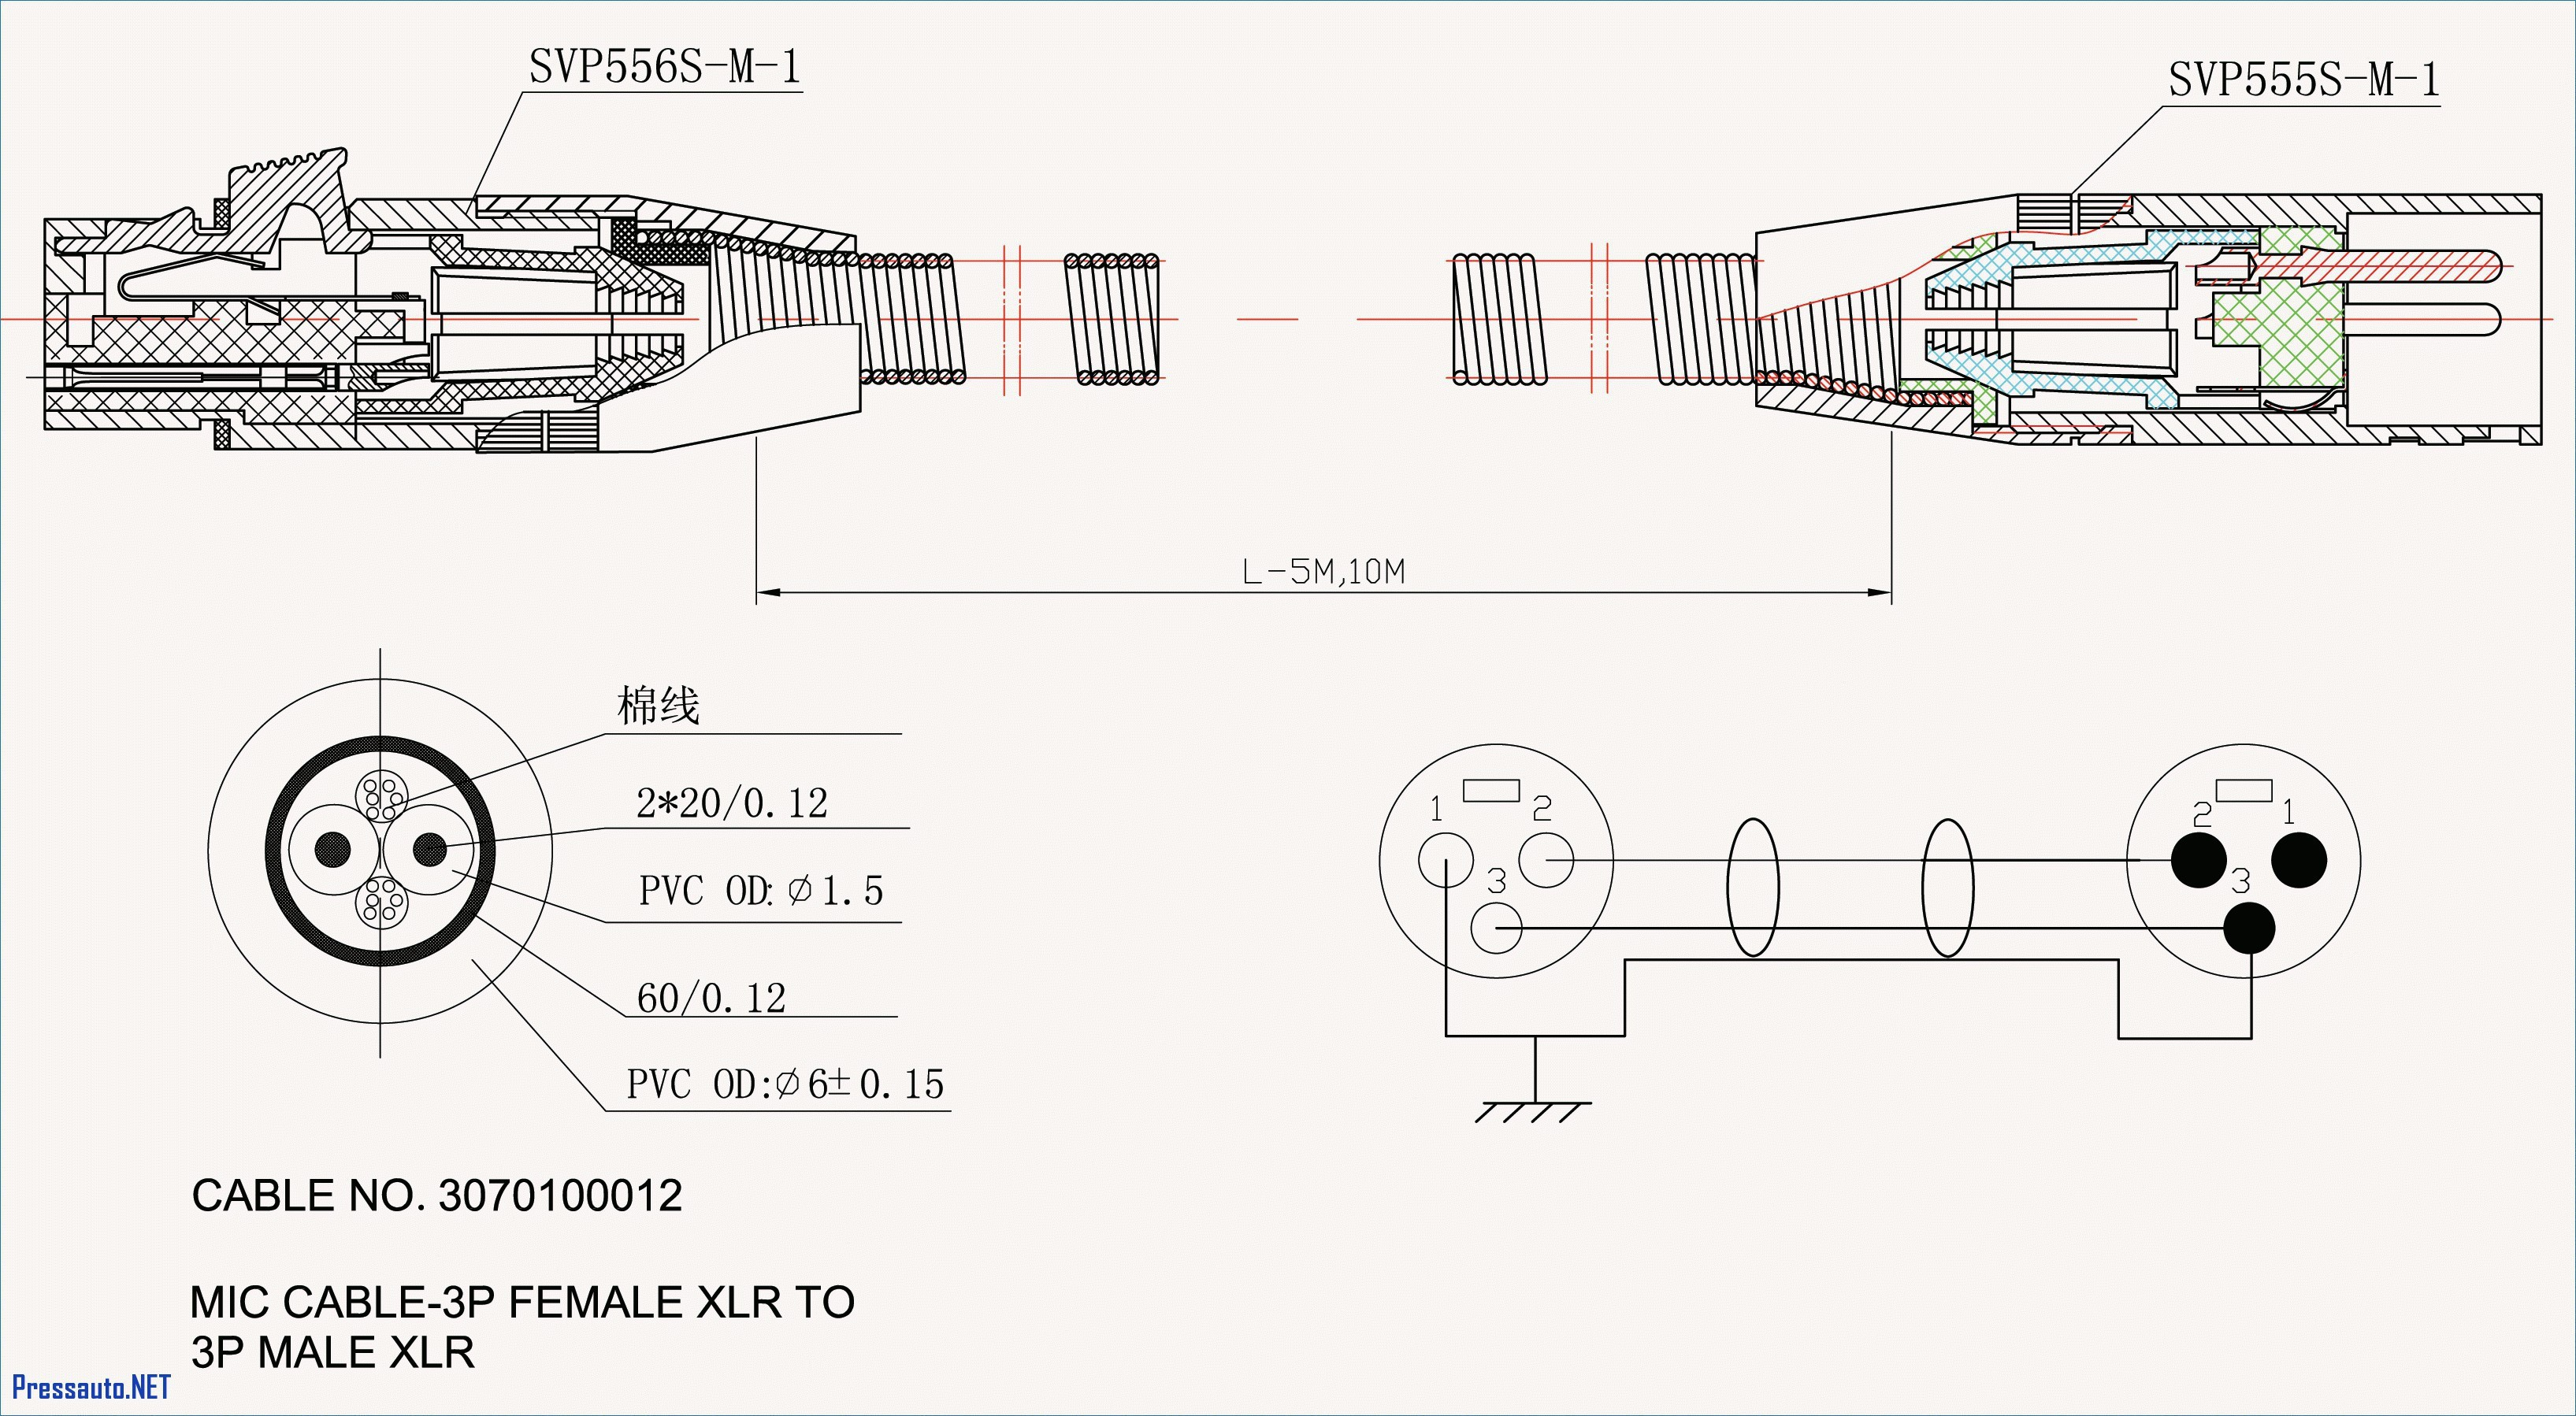 Buick Lesabre Engine Diagram Acdelco Buick Lesabre Wiring Diagrams Acdelco Free Engine Image for Of Buick Lesabre Engine Diagram